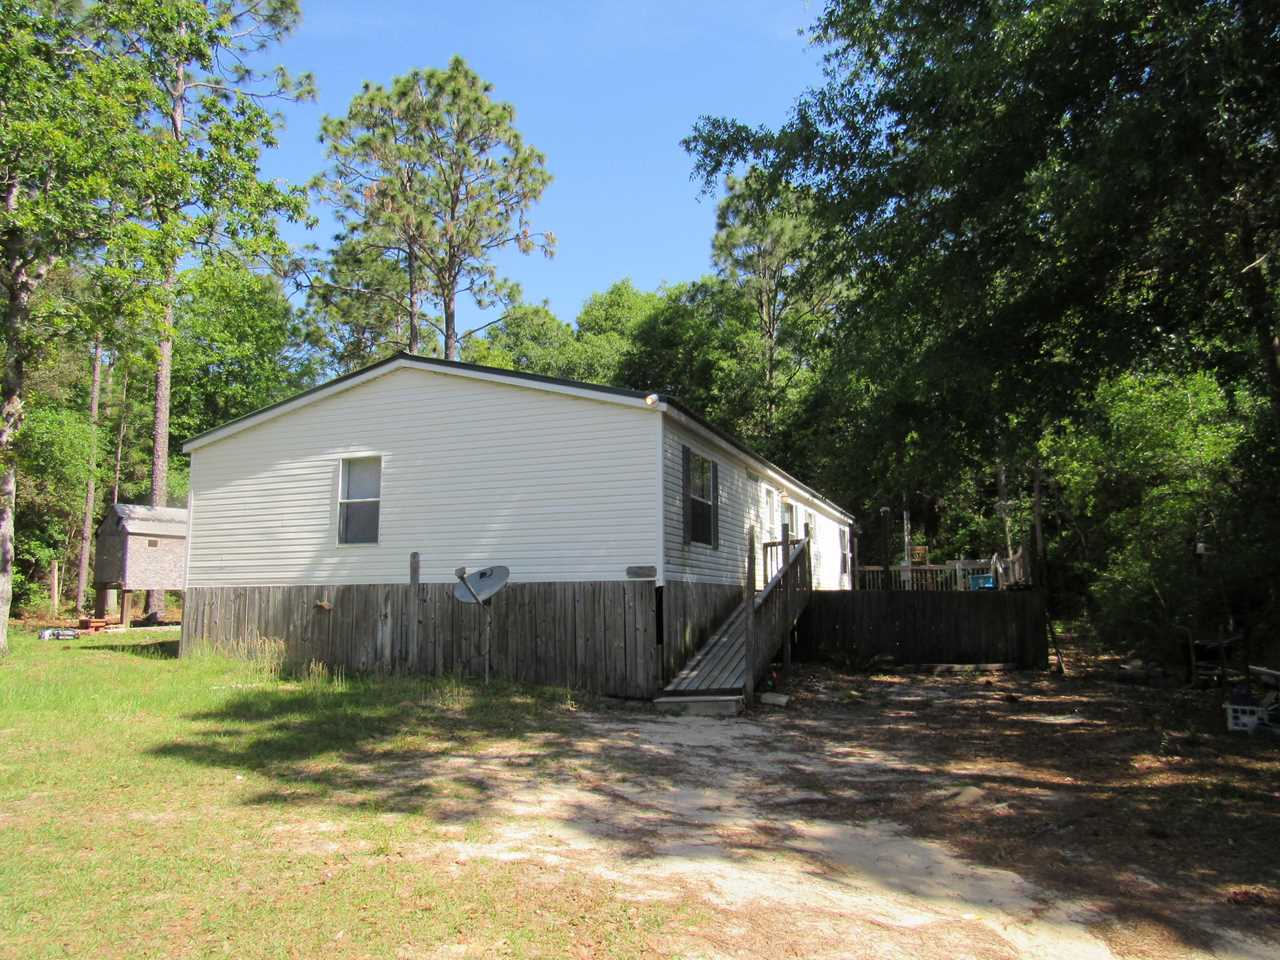 4641 Wilkerson Bluff Road Holt, FL 32564 | MLS 798738 Photo 1